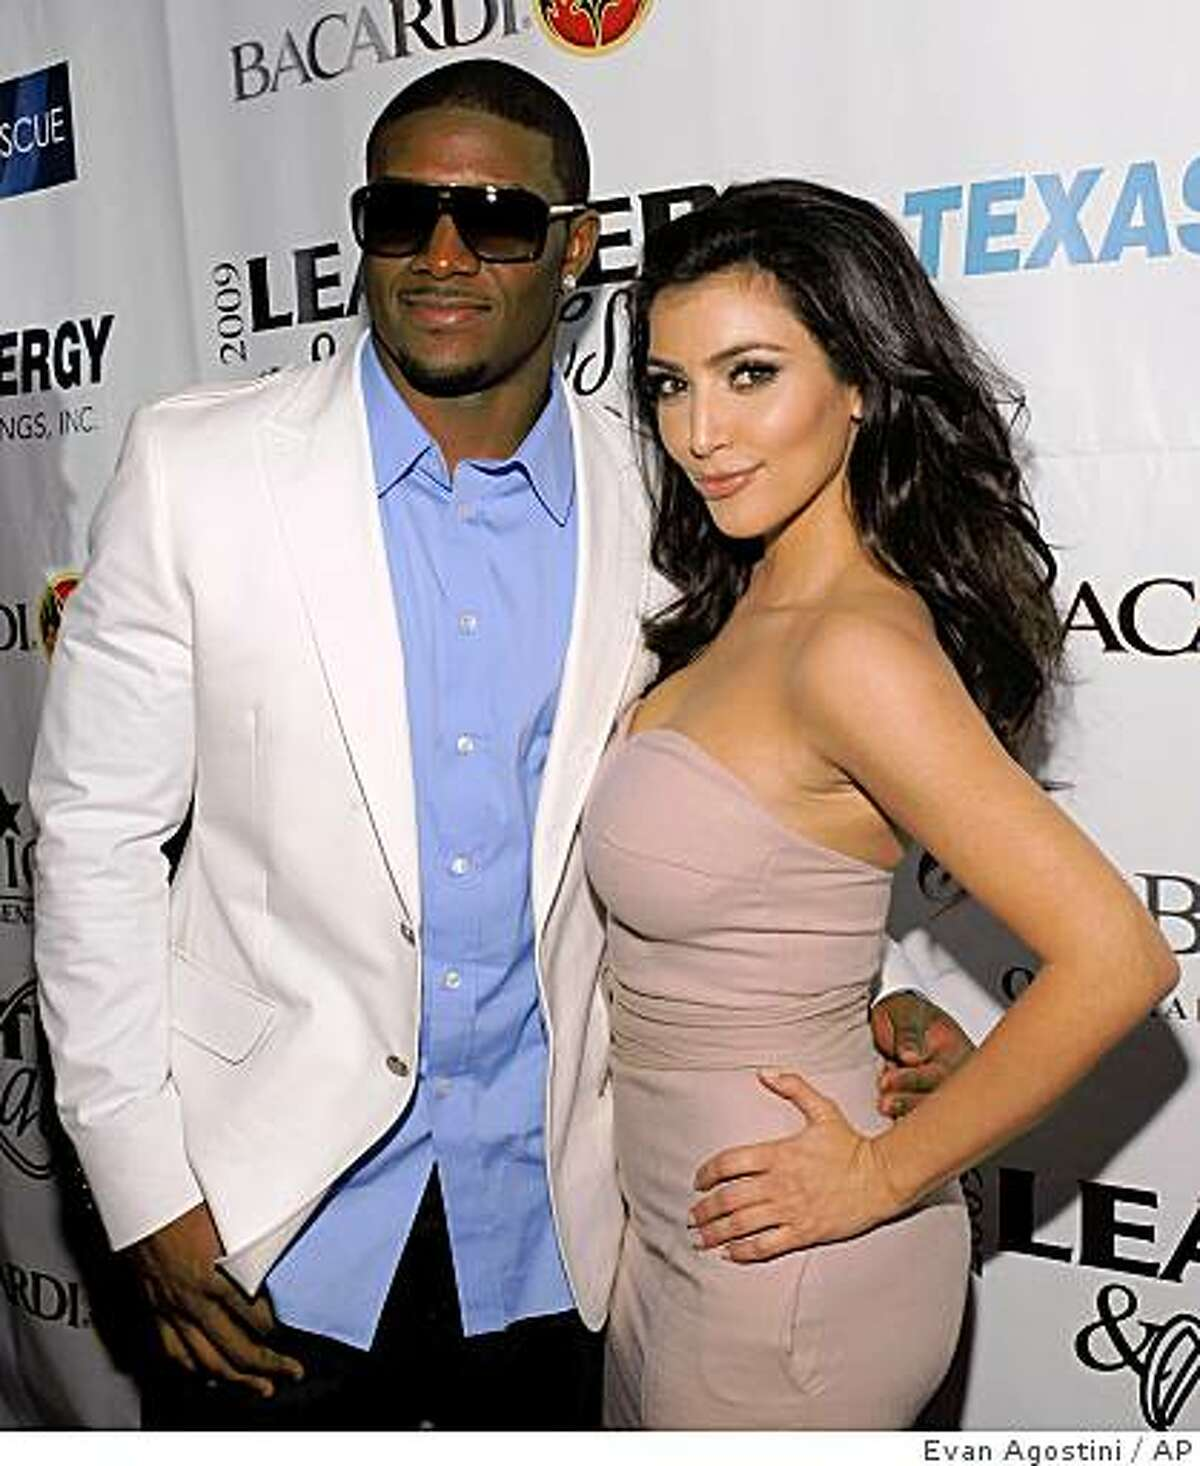 NFL player Reggie Bush and party co-host Kim Kardashian arrive at the 6th Annual Leather and Laces Super Bowl Celebration at Jackson?s, Friday, Jan. 30, 2009 in Tampa, Fla. (AP Photo/Evan Agostini)